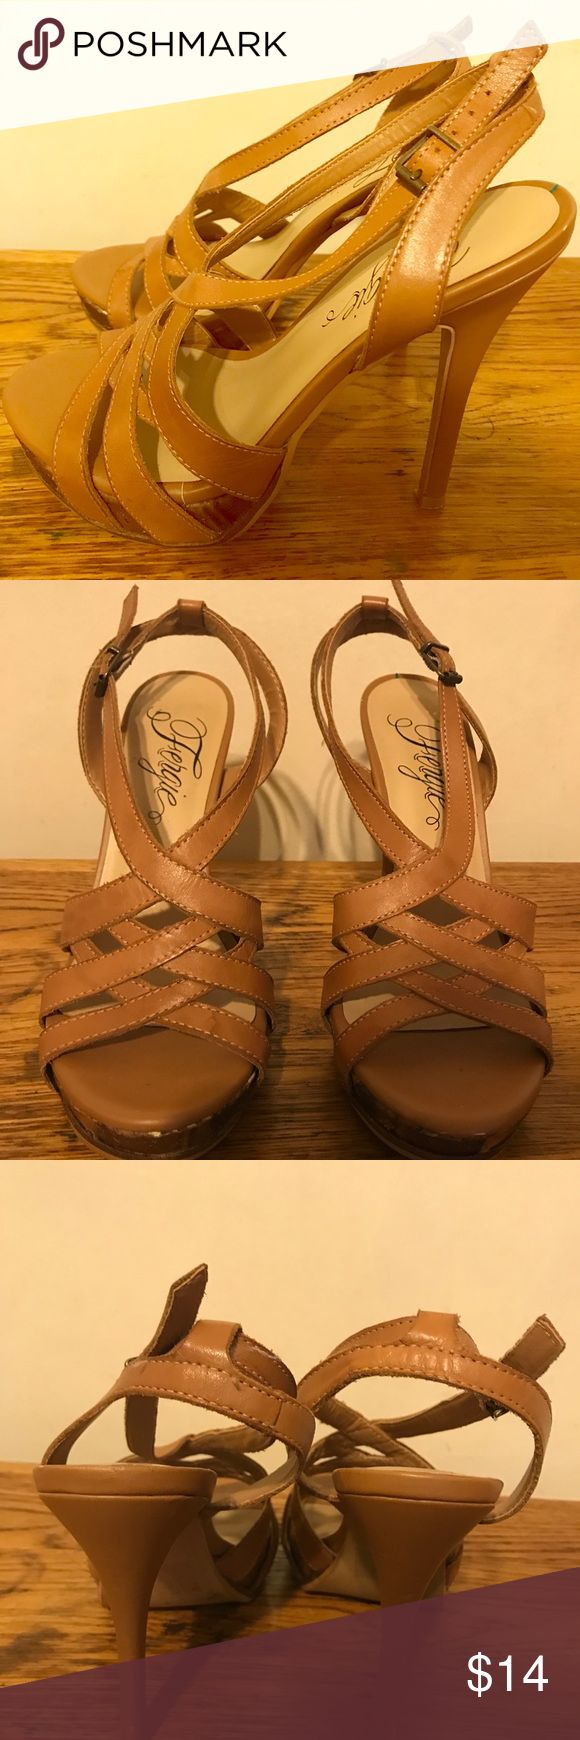 Sz. 6 Heeled Sandals (Fergie) Sz.6 brown heeled sandals - Made by Fergie Fergie Shoes Sandals